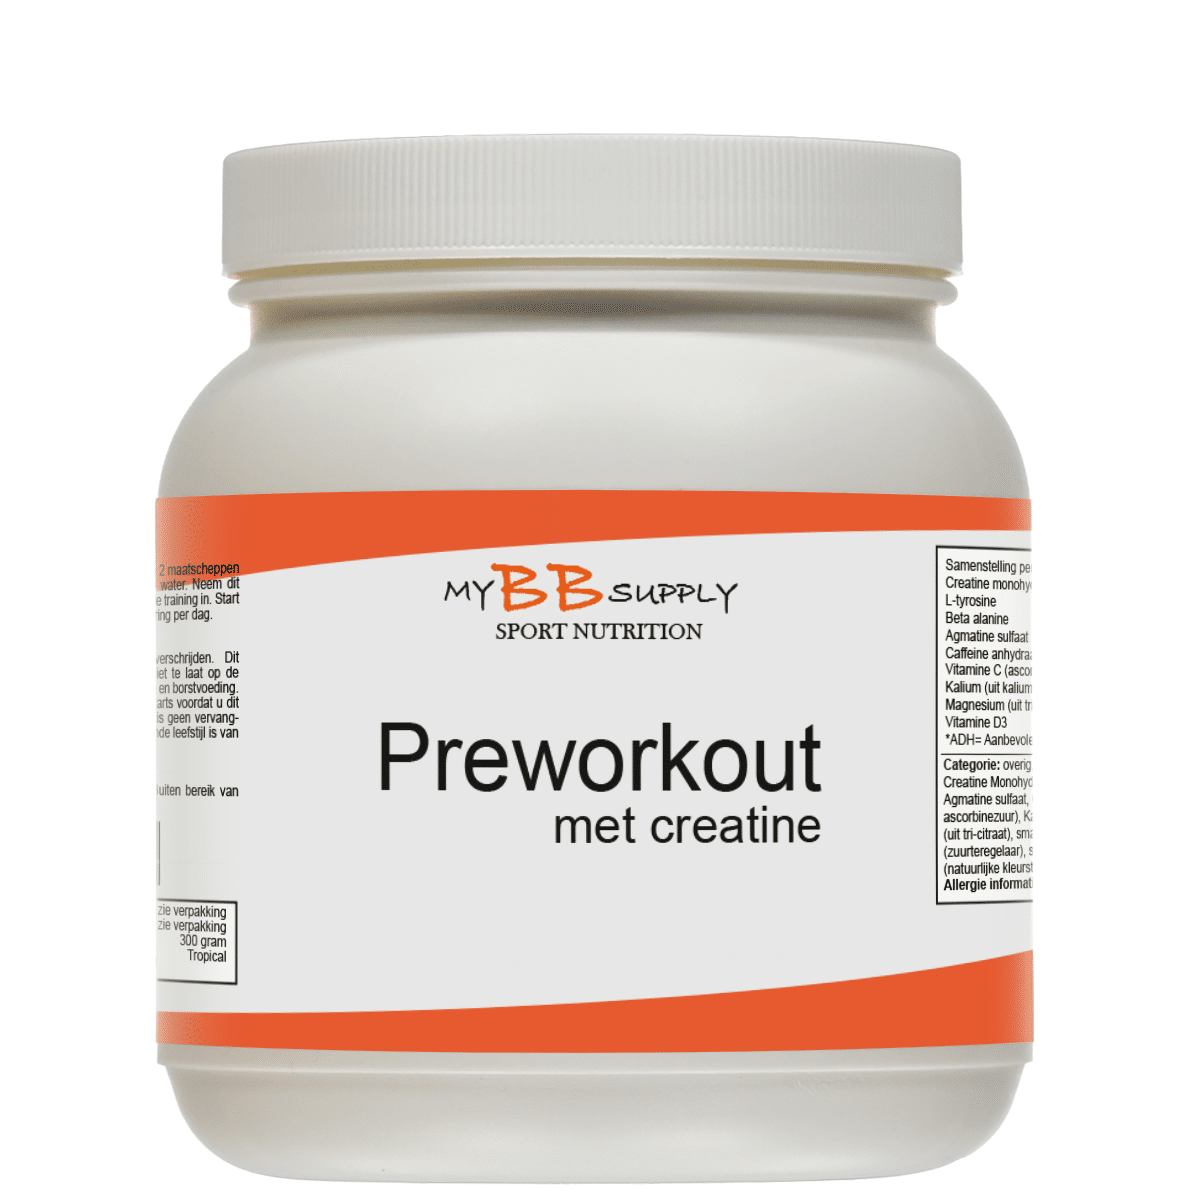 MyBBSupply Preworkout Creatine